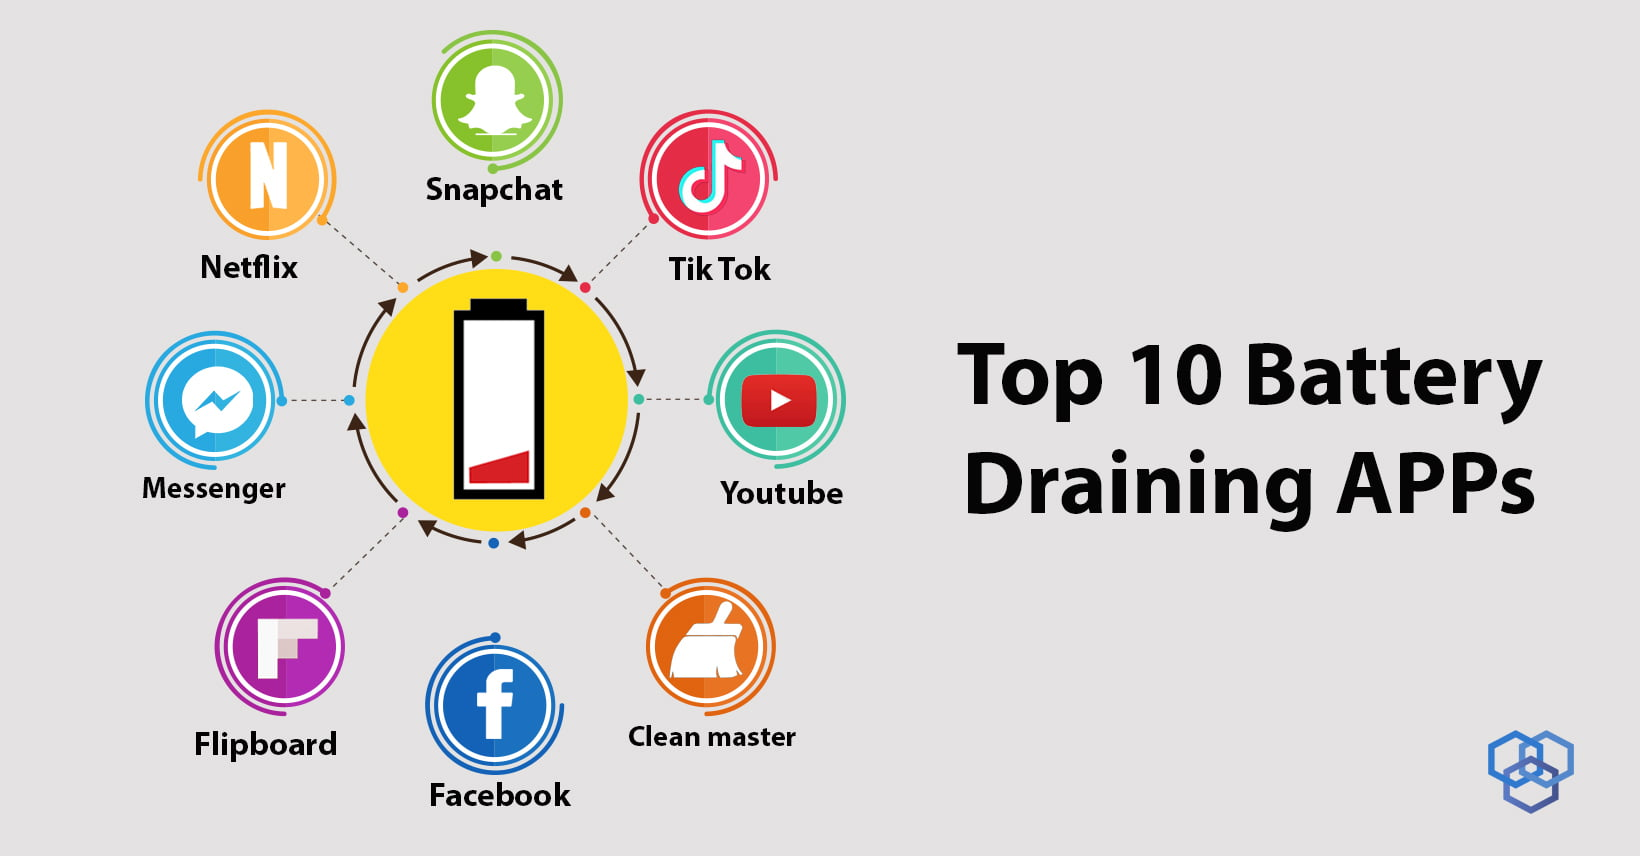 Top 10 Battery Draining Apps to avoid 2019 - TechEngage